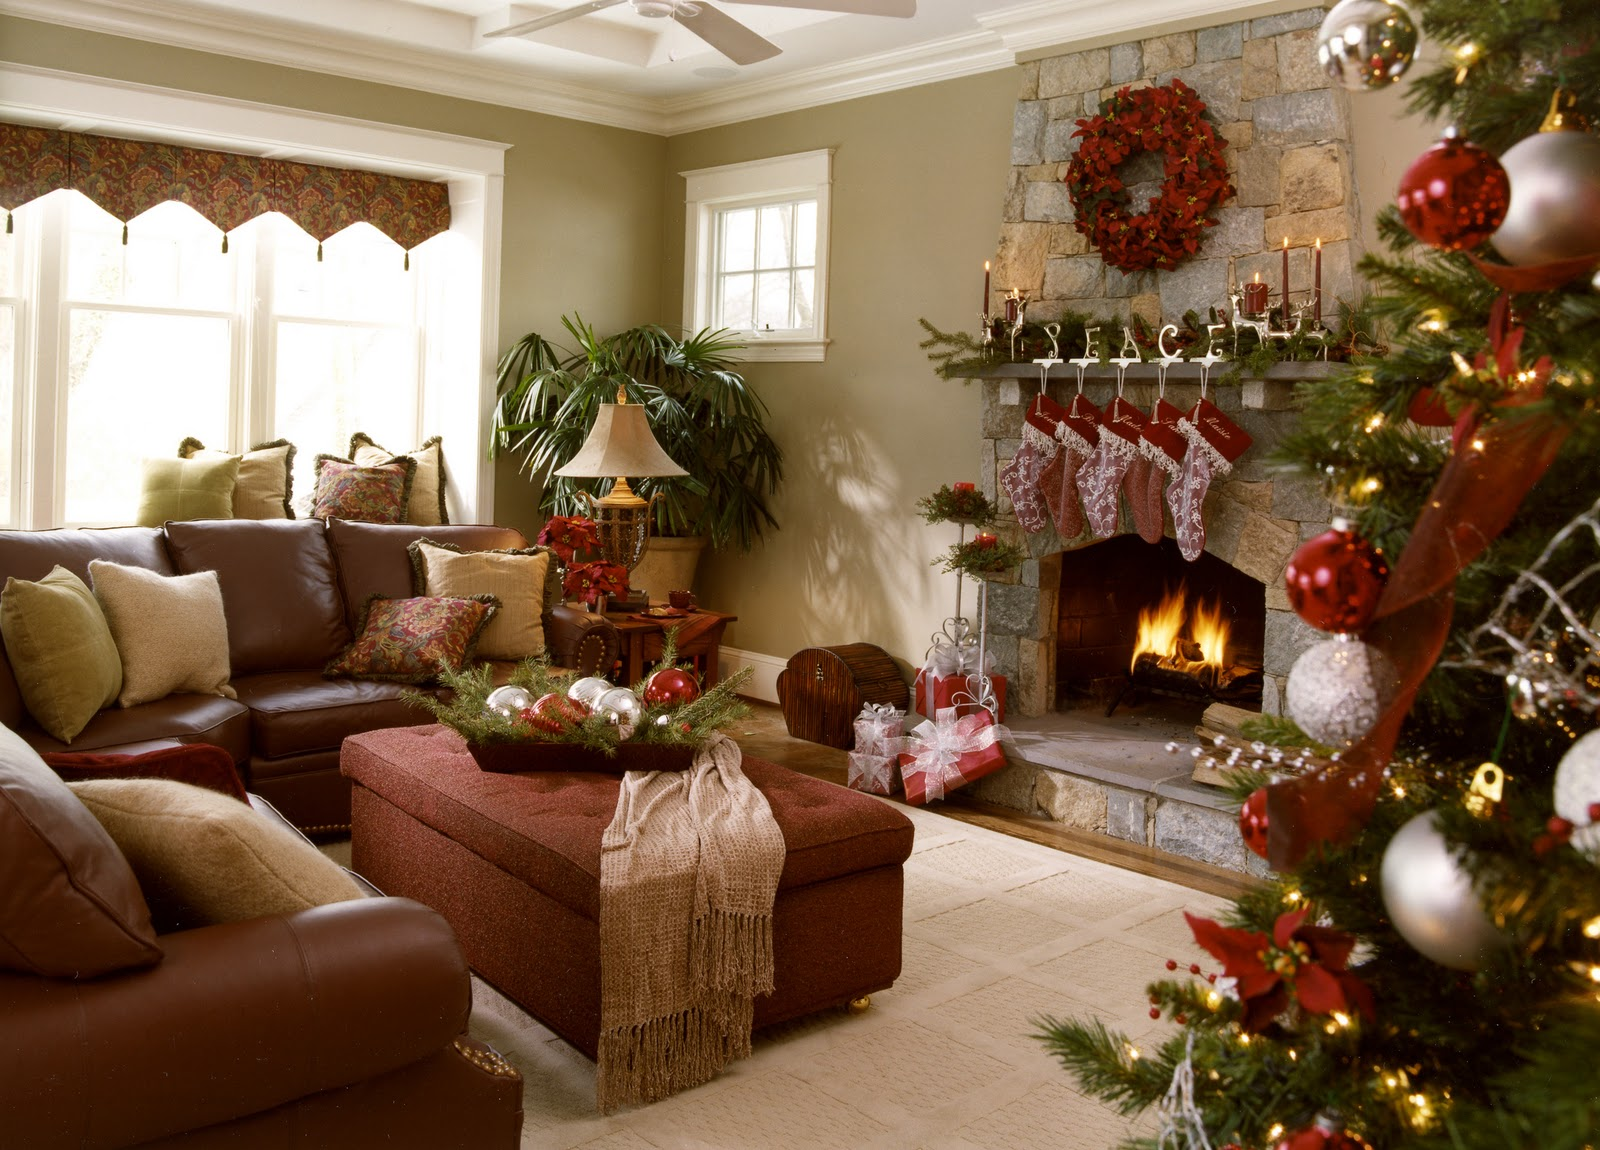 Nine ideas how to welcome the christmas spirit interior - Living room interior decorating ideas ...